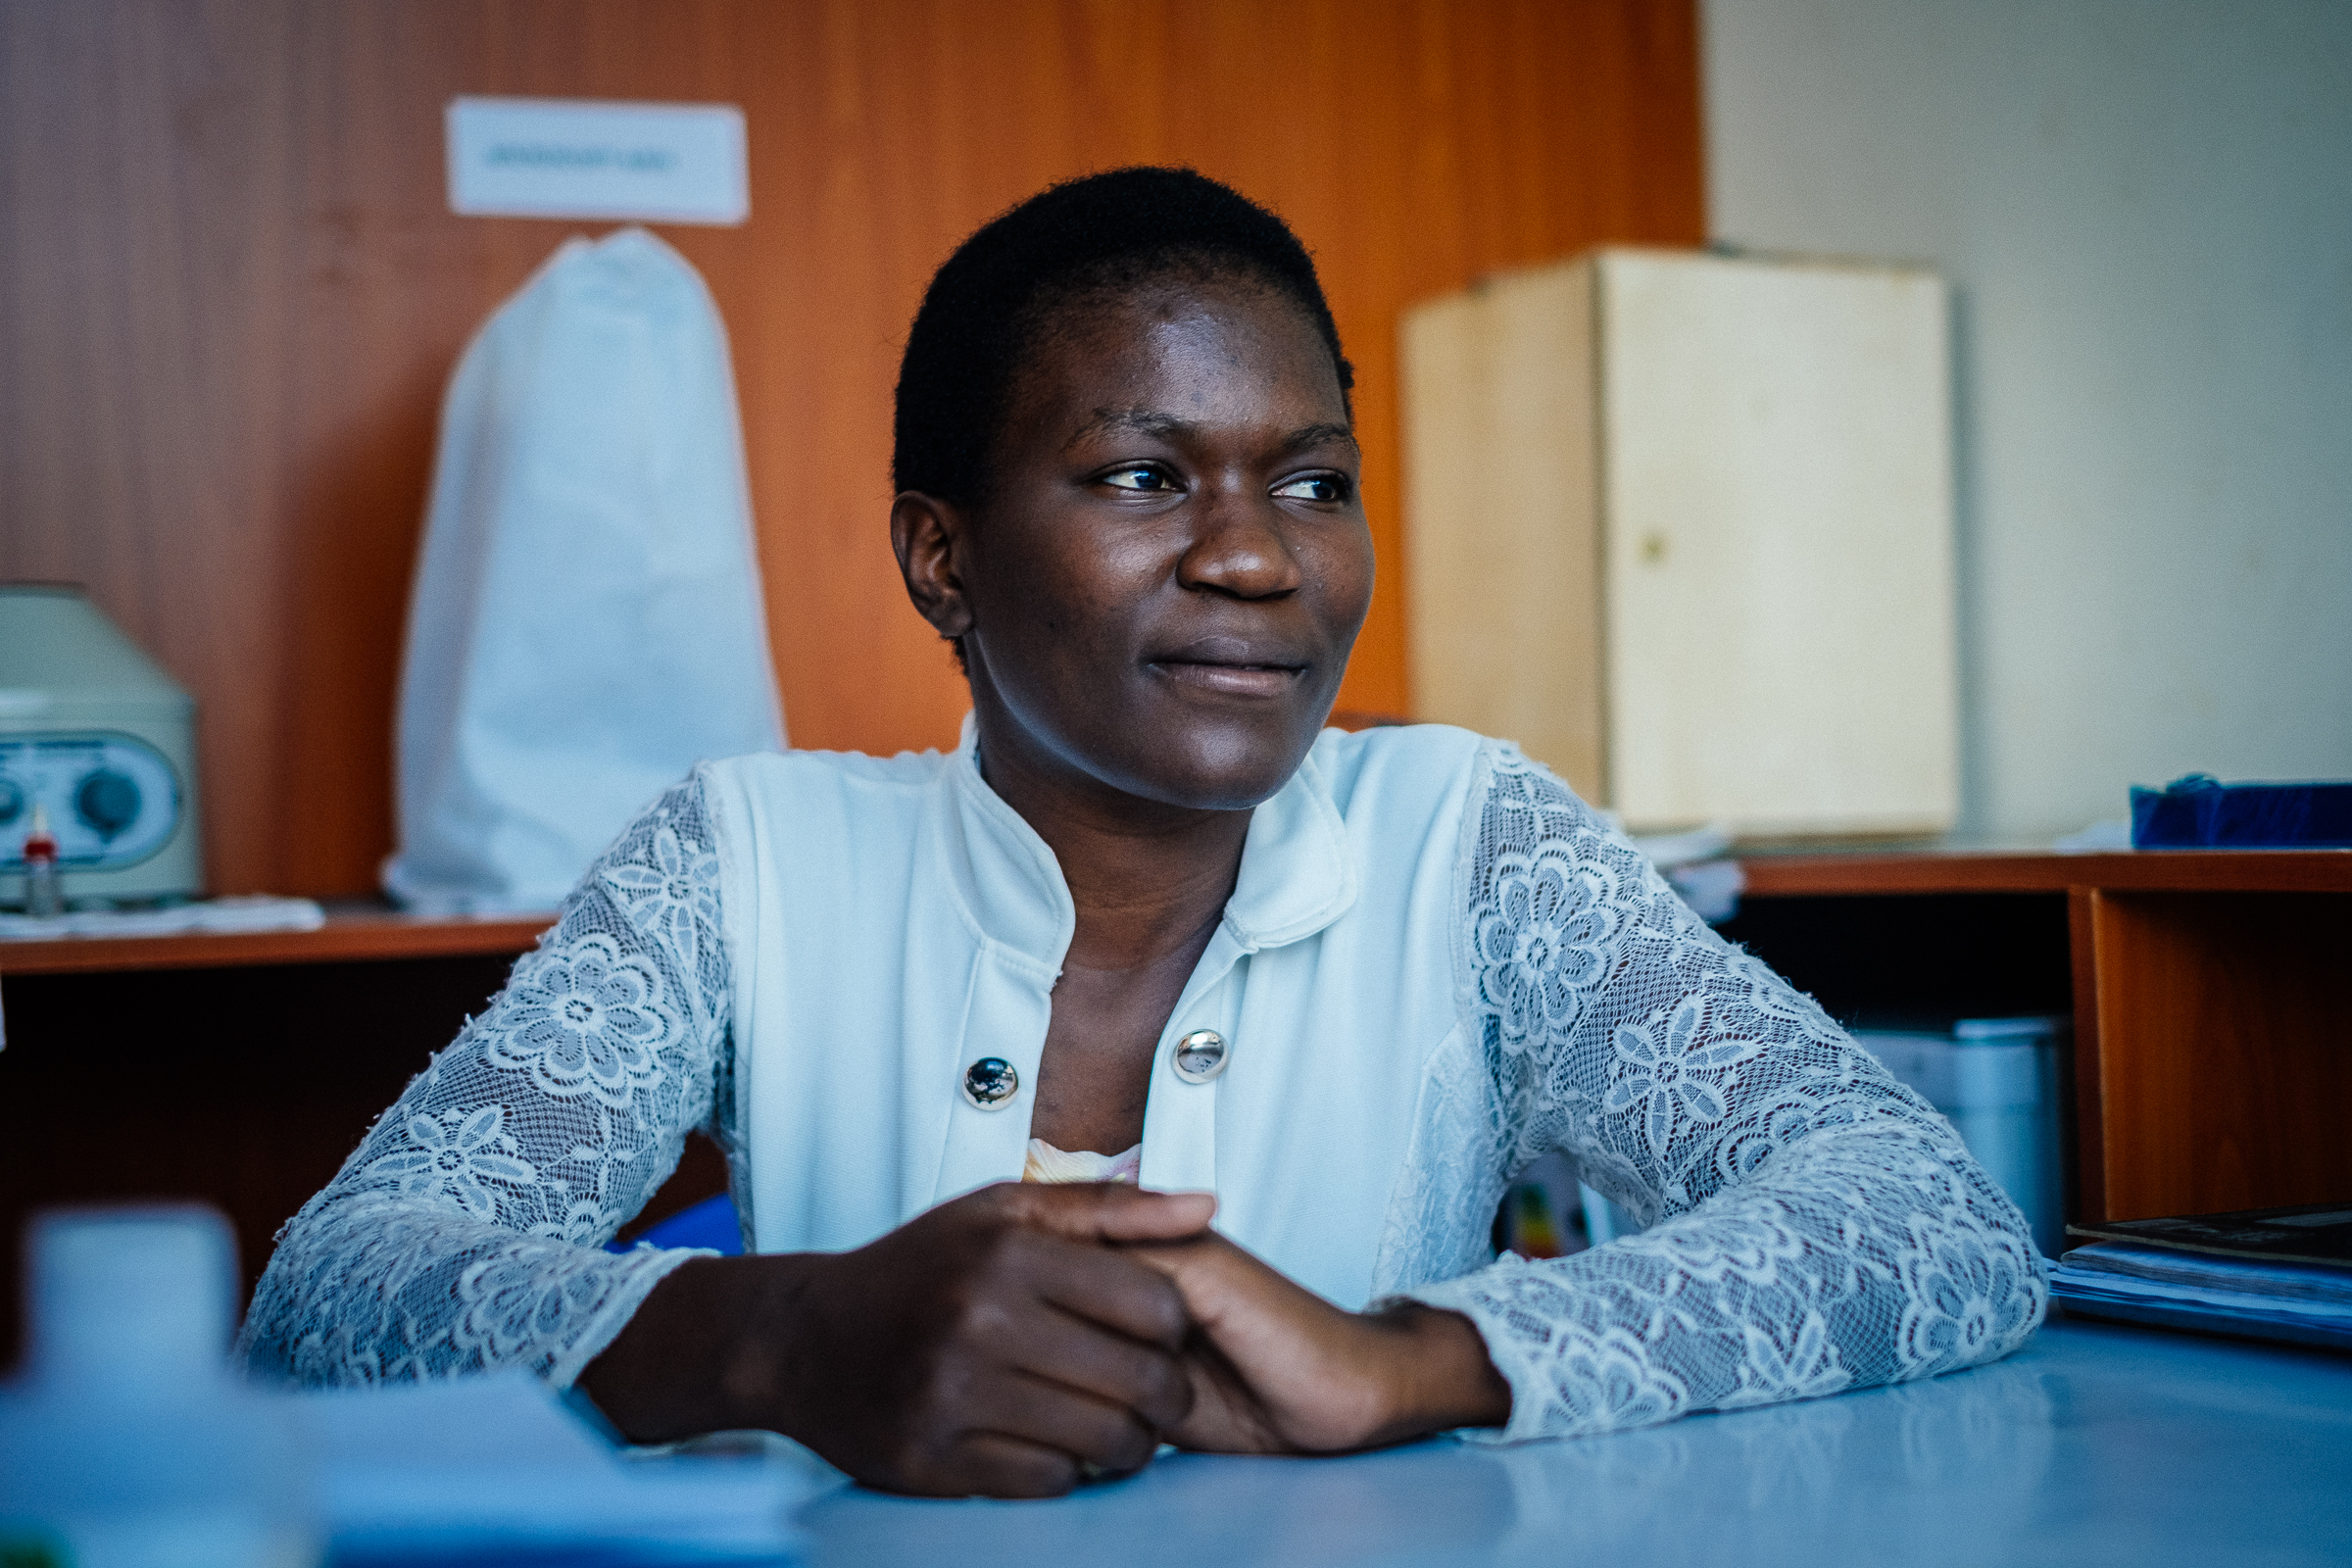 Highlights from our interview and observation session with Cherie pharmaceutical technologist in a small chain pharmacy in Kisumu.